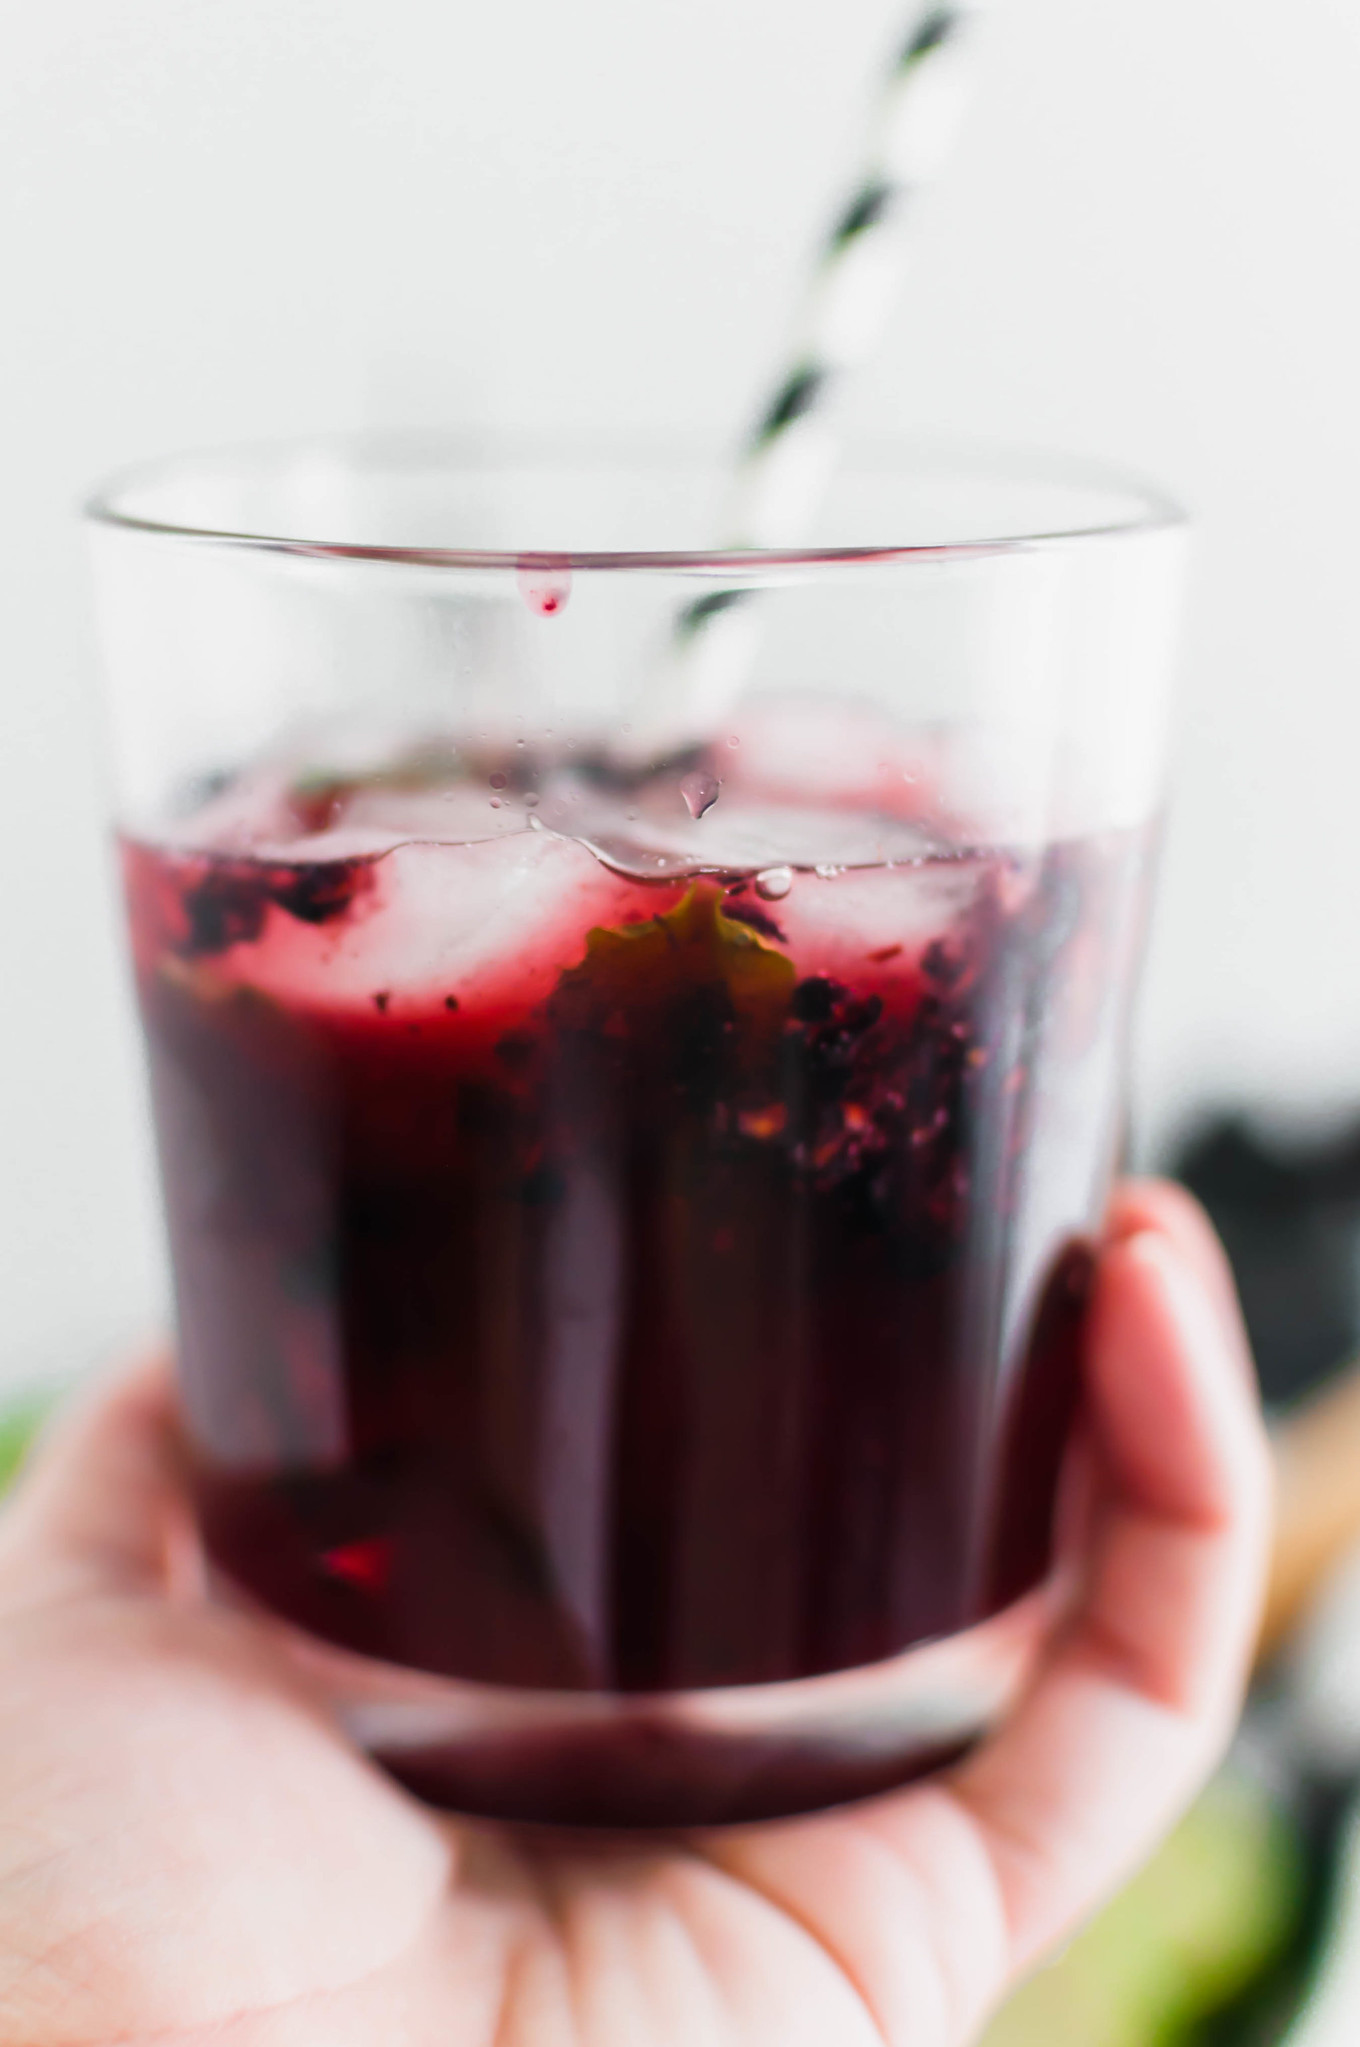 These Blackberry Mojitos will quickly become the drink of summer. An easy blackberry simple syrup and all the classic mojito ingredients are all you need for this refreshing cocktail.